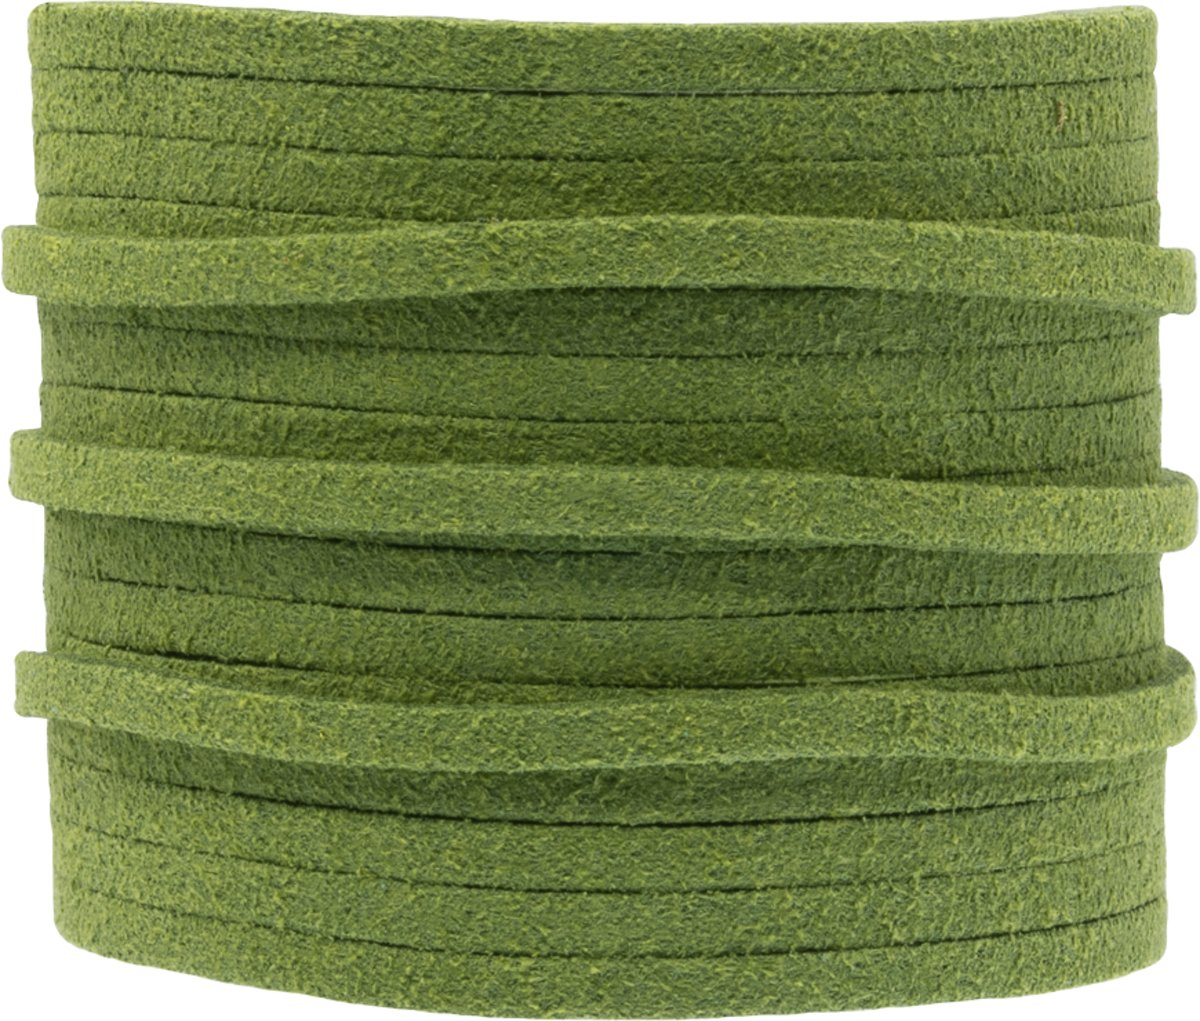 Faux Suede Veter (3 mm) Parrot Green (5 Meter)